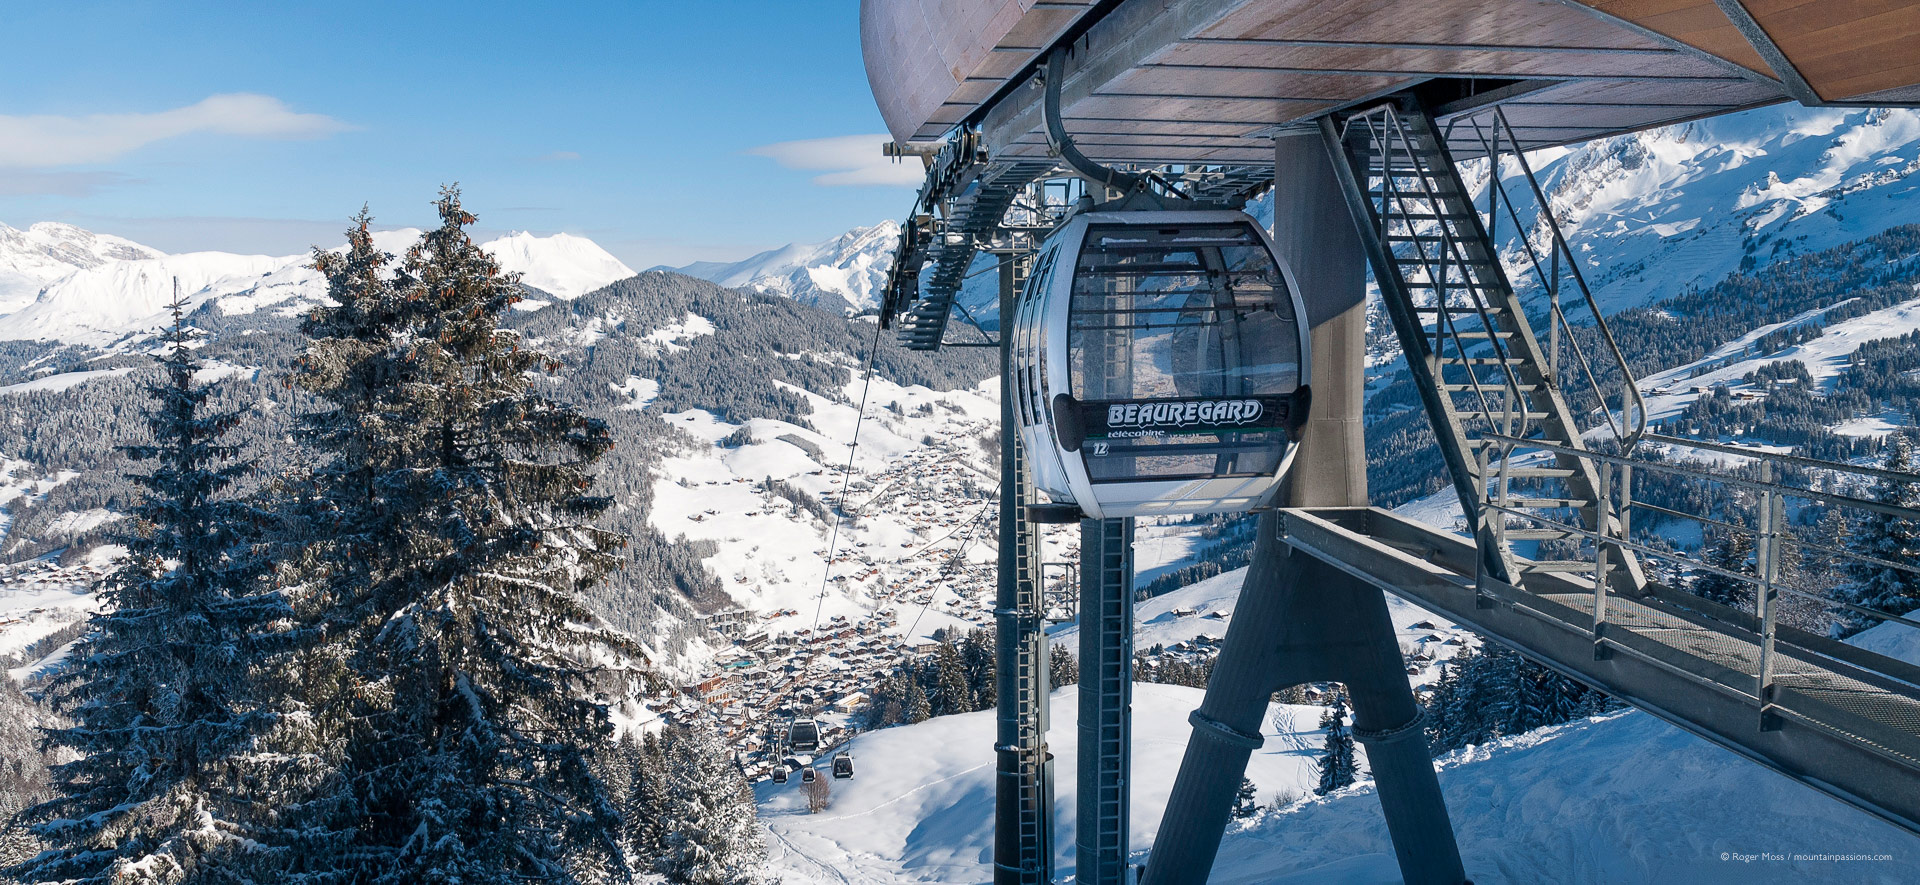 View of approaching cabin of gondola lift above La Clusaz, with village below and mountain backdrop.